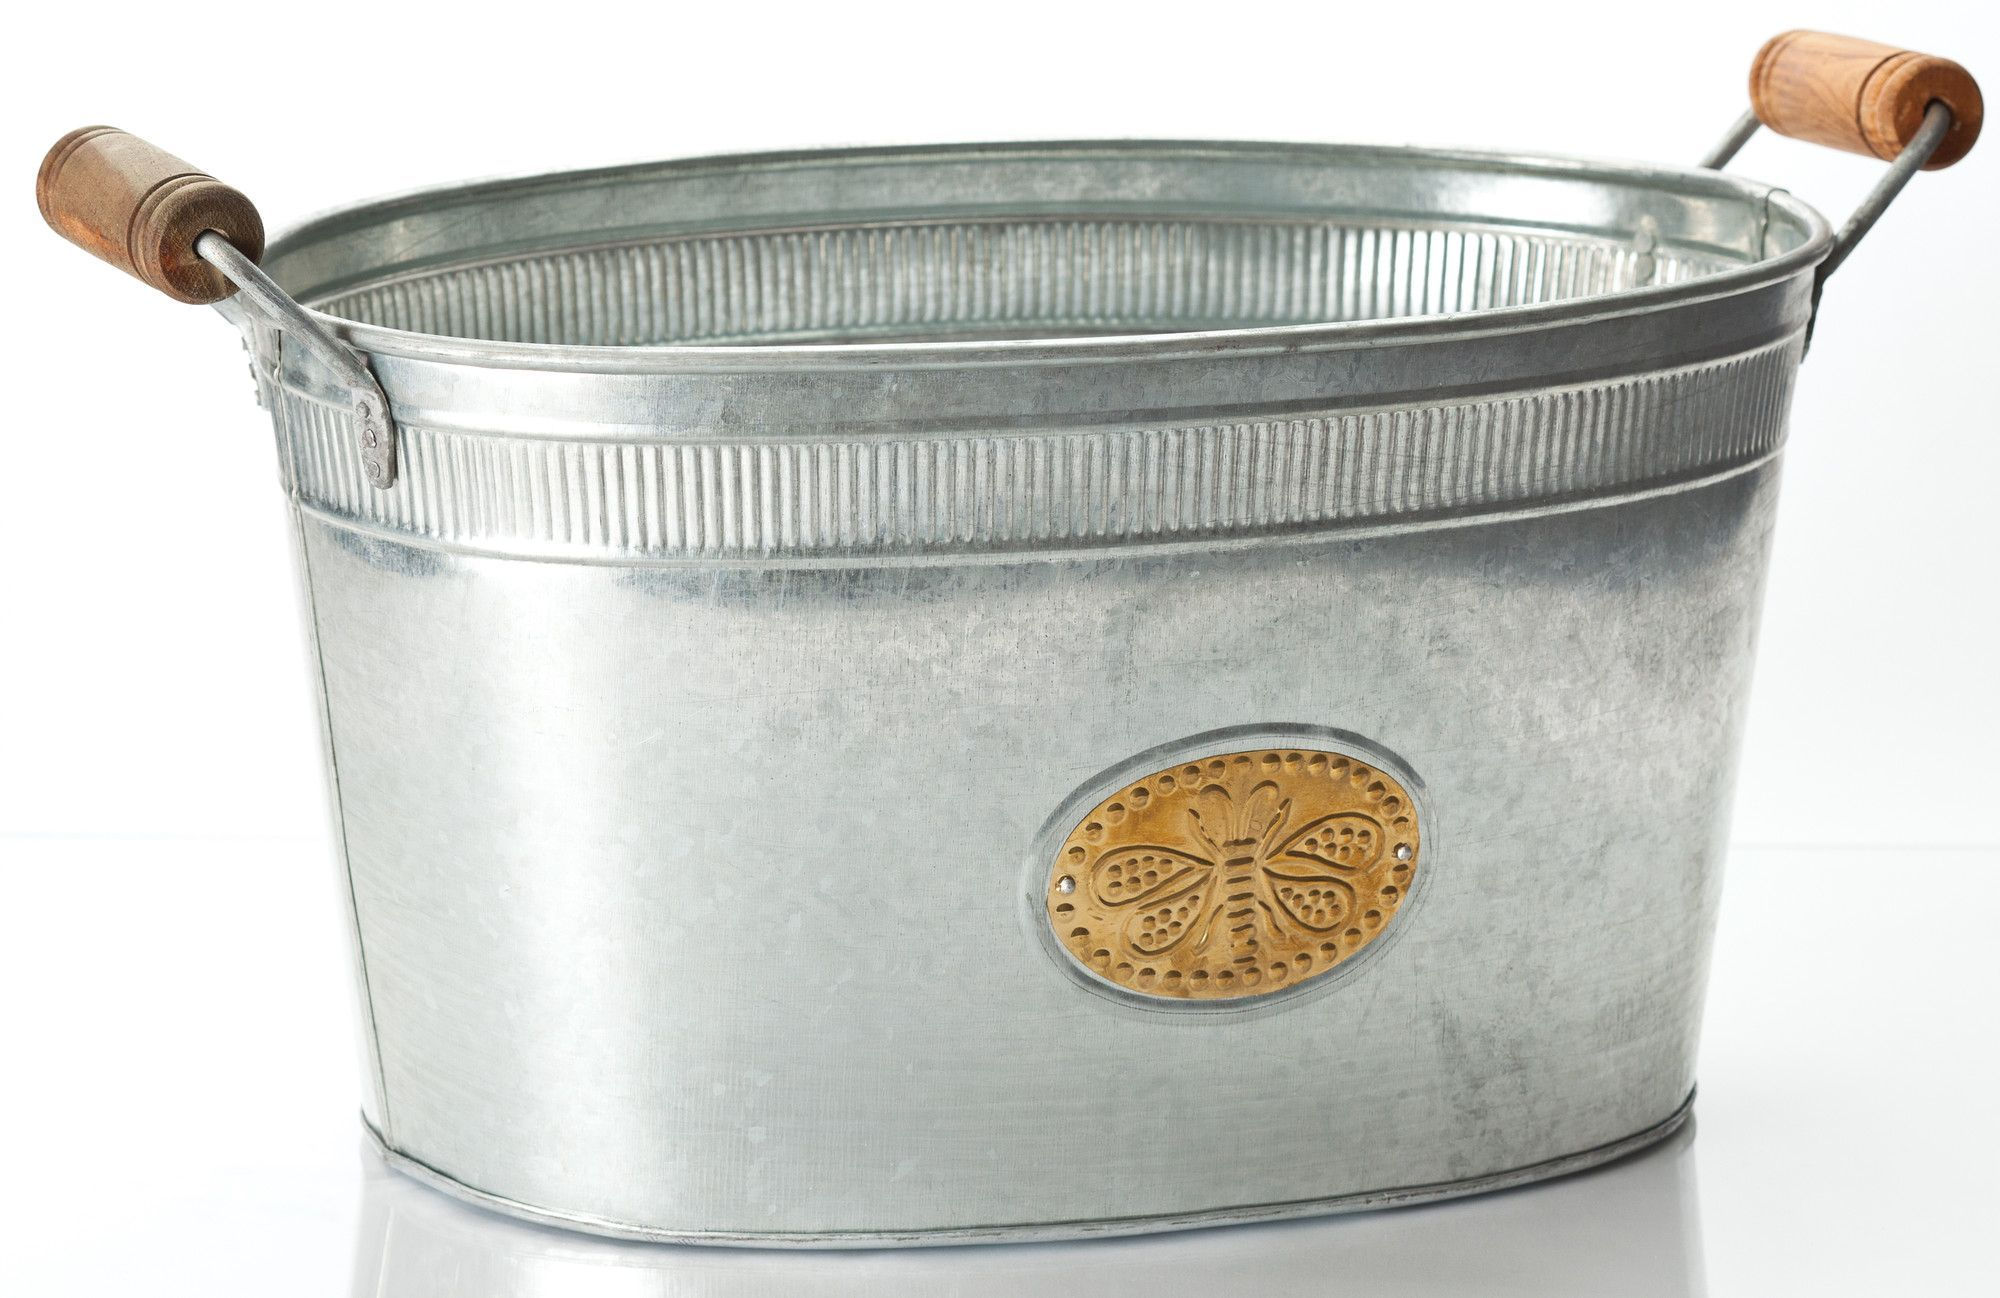 Bumblebee Oval Tub Beverage Tub Wine Bucket Galvanized